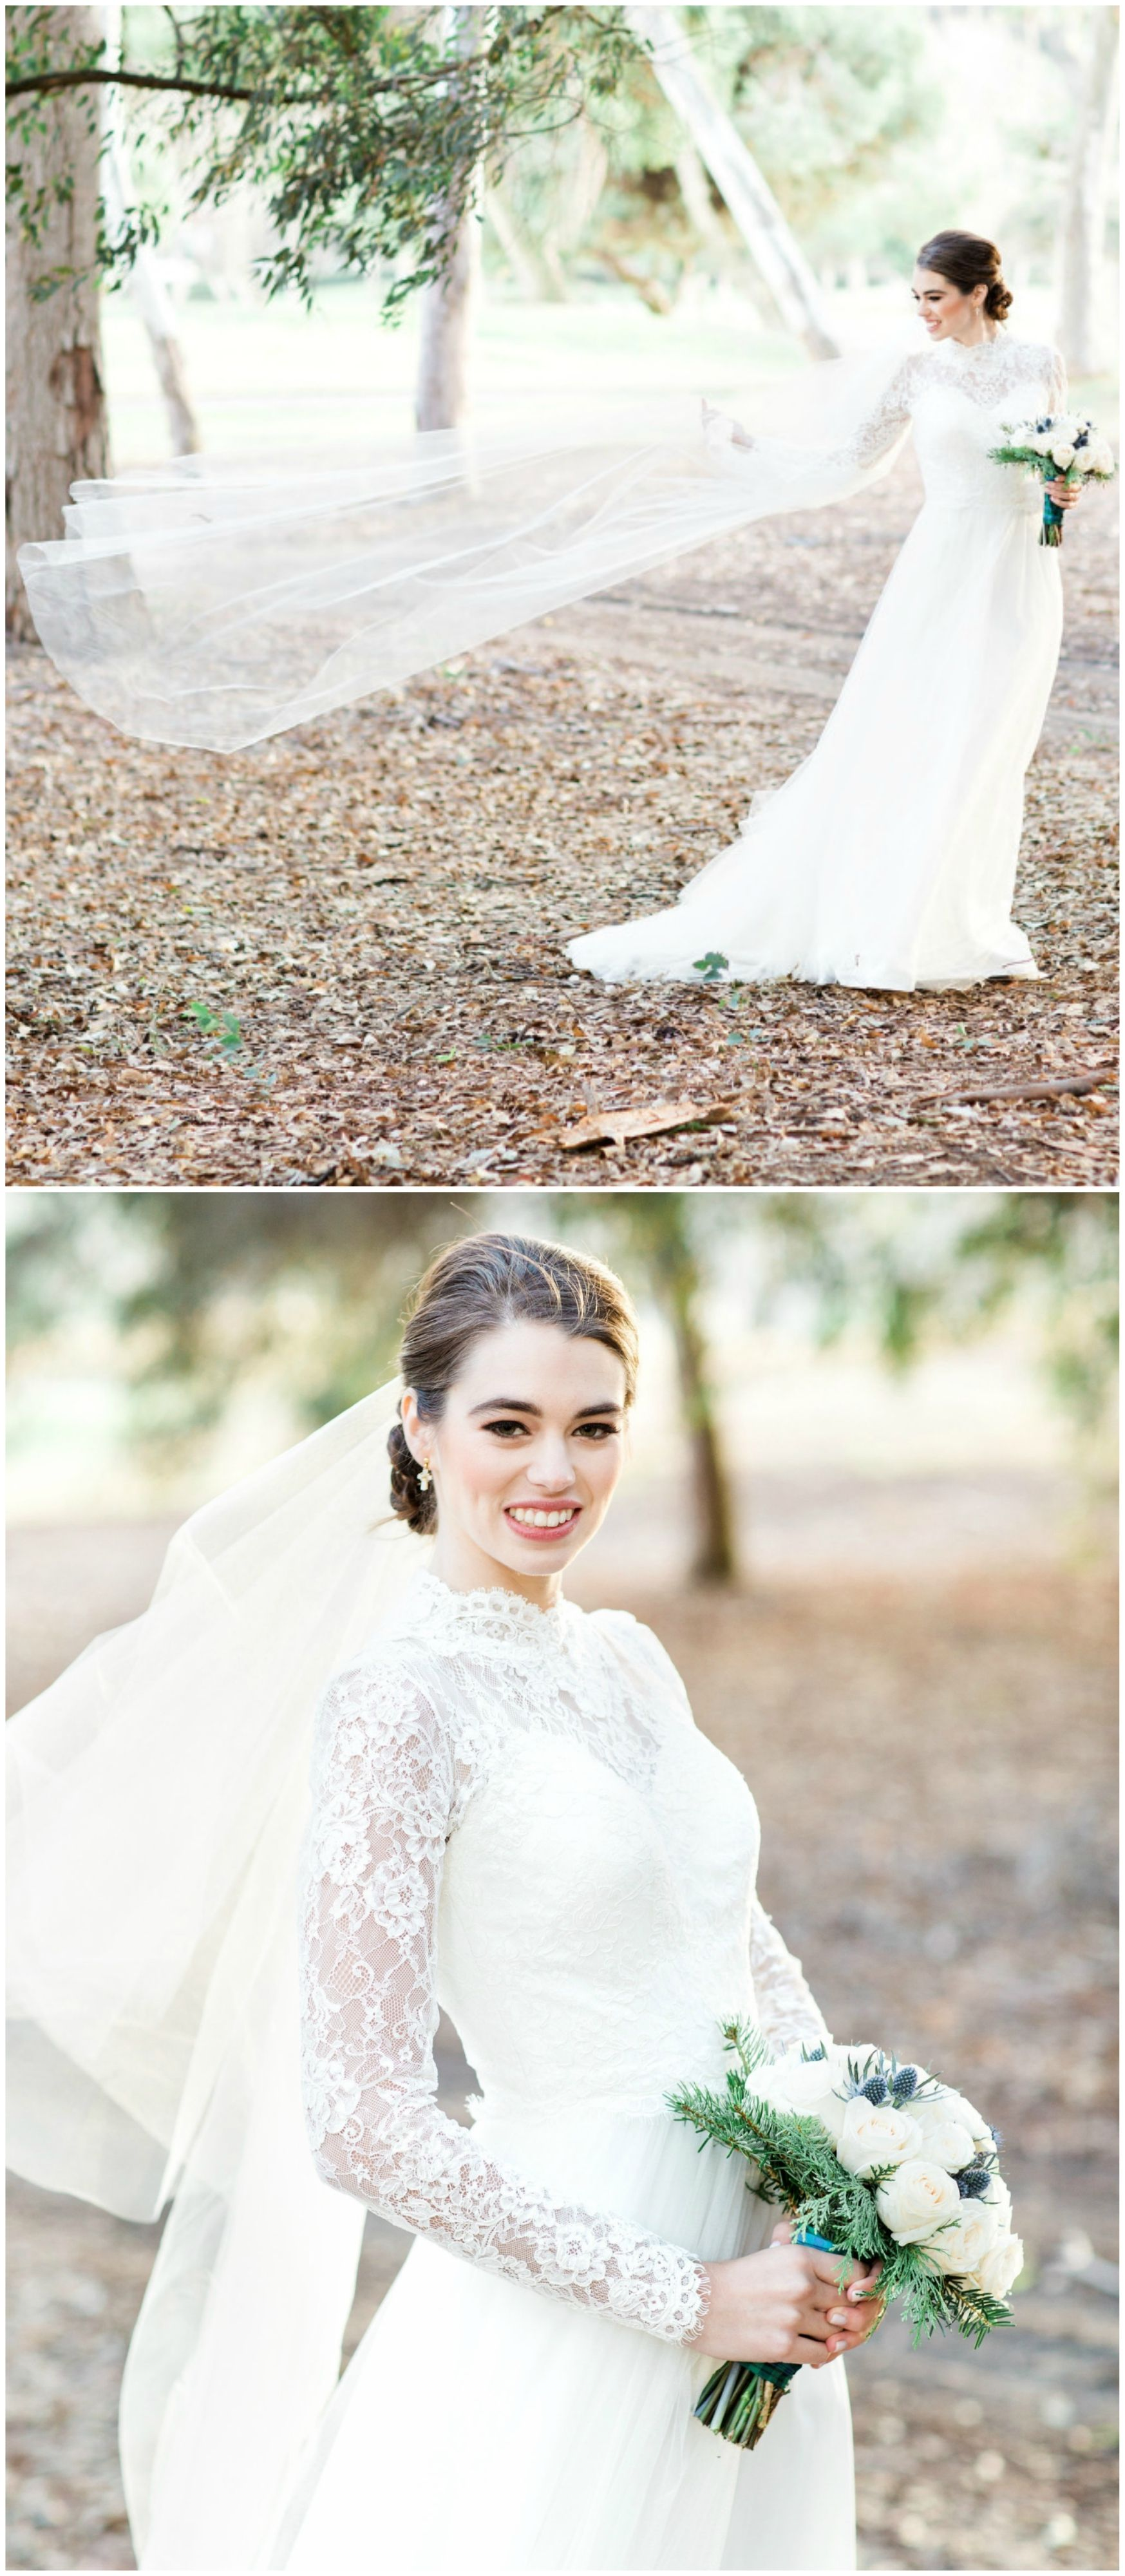 The smarter way to wed lace wedding dresses lace weddings and